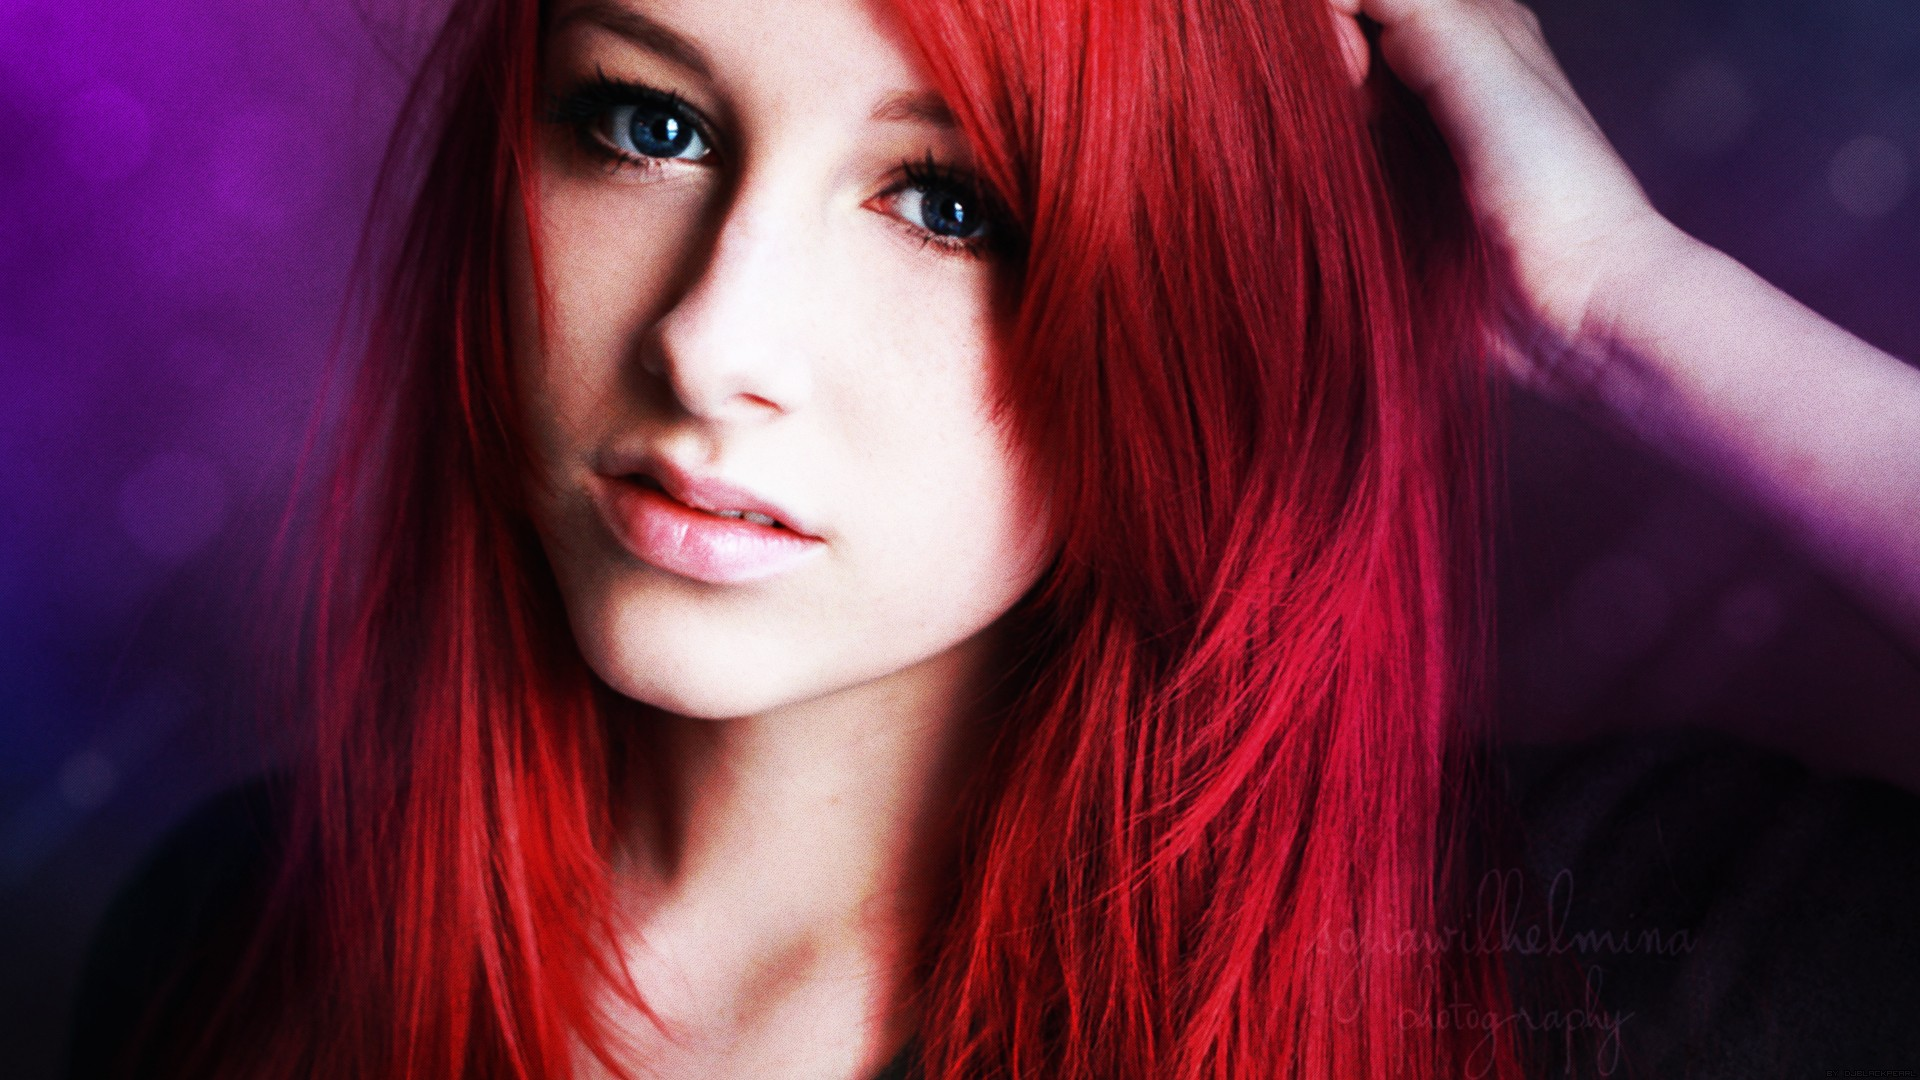 girl, red hair, blue eyes